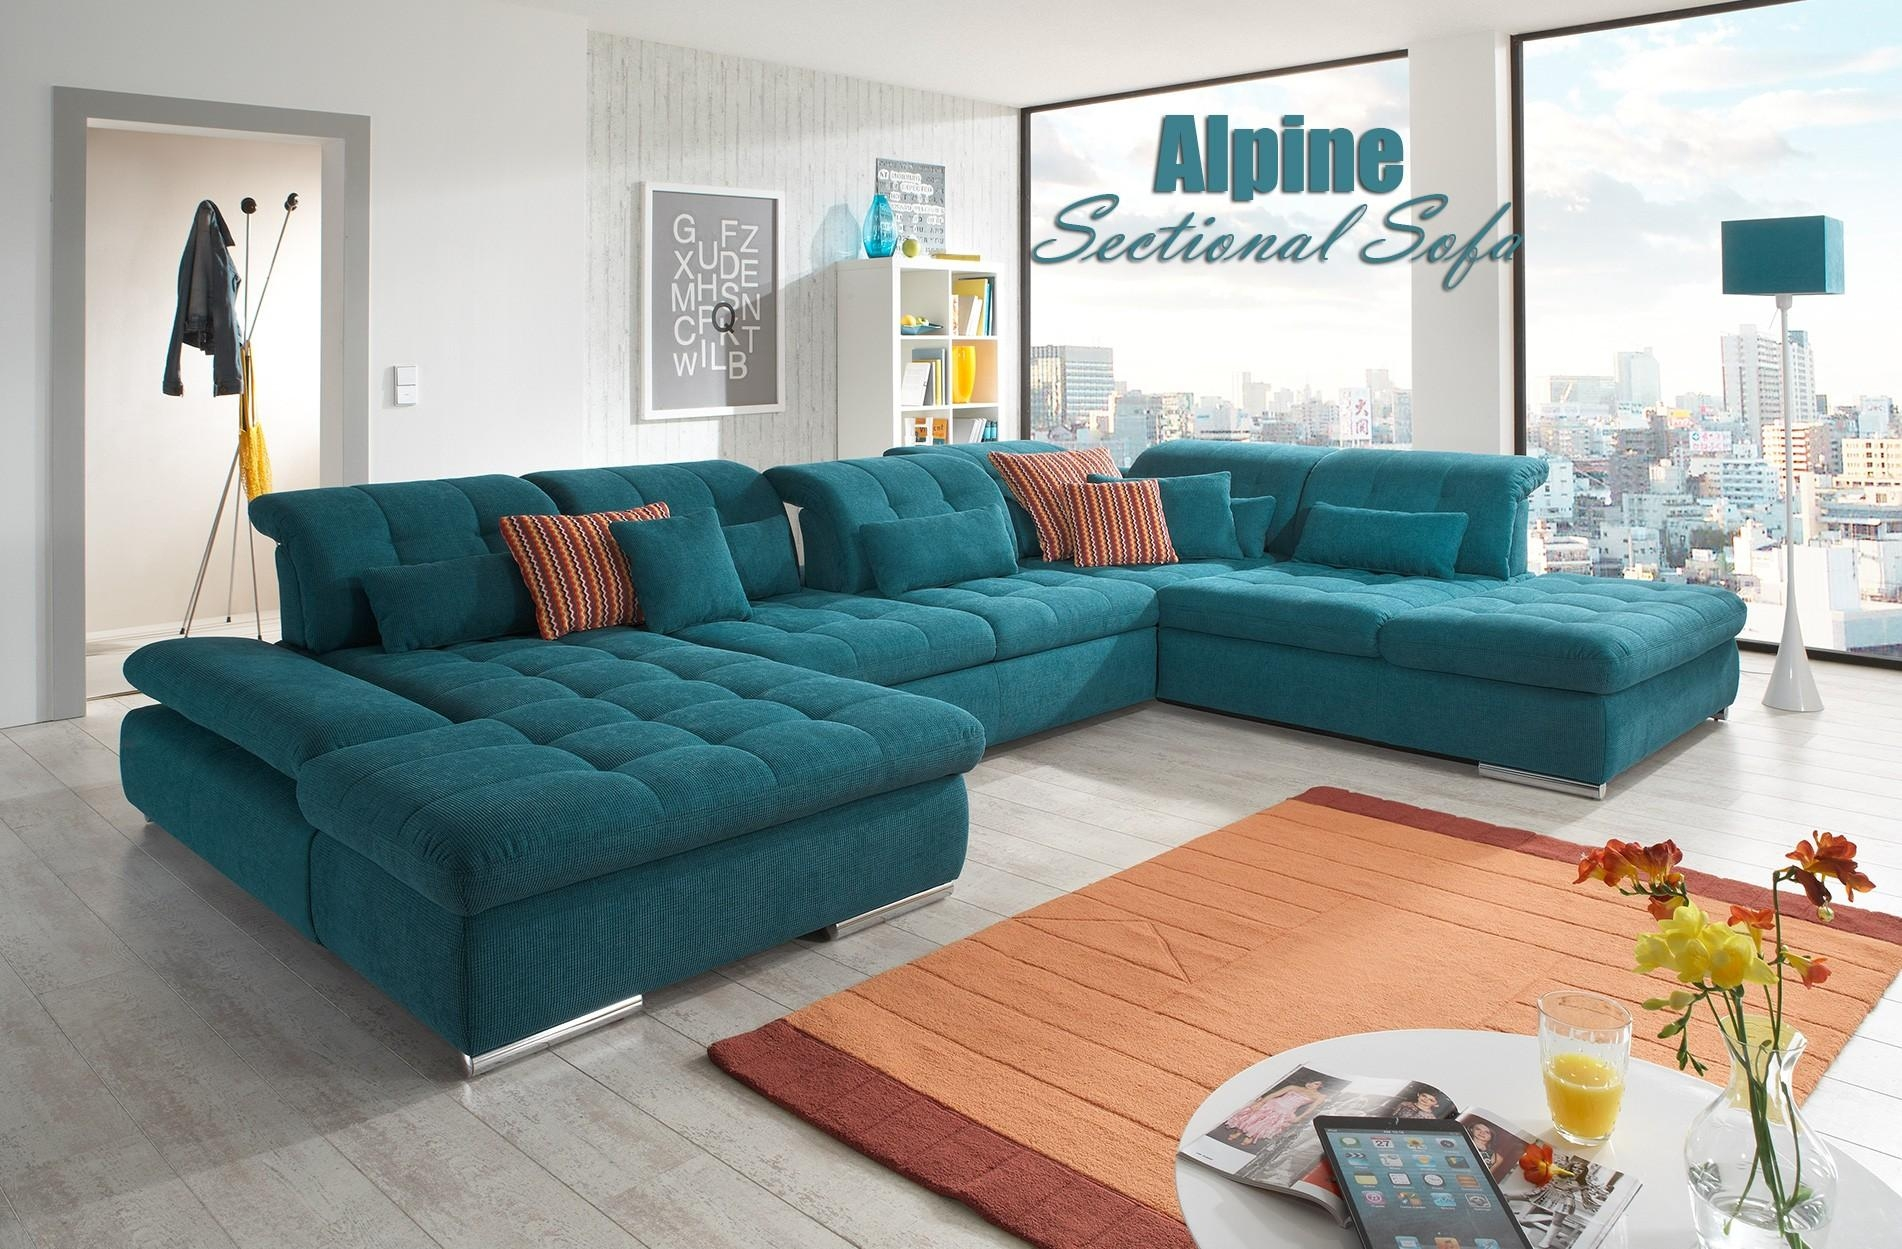 Alpine Sectional Sofa In Green Fabric Within Green Sectional Sofa (View 15 of 15)